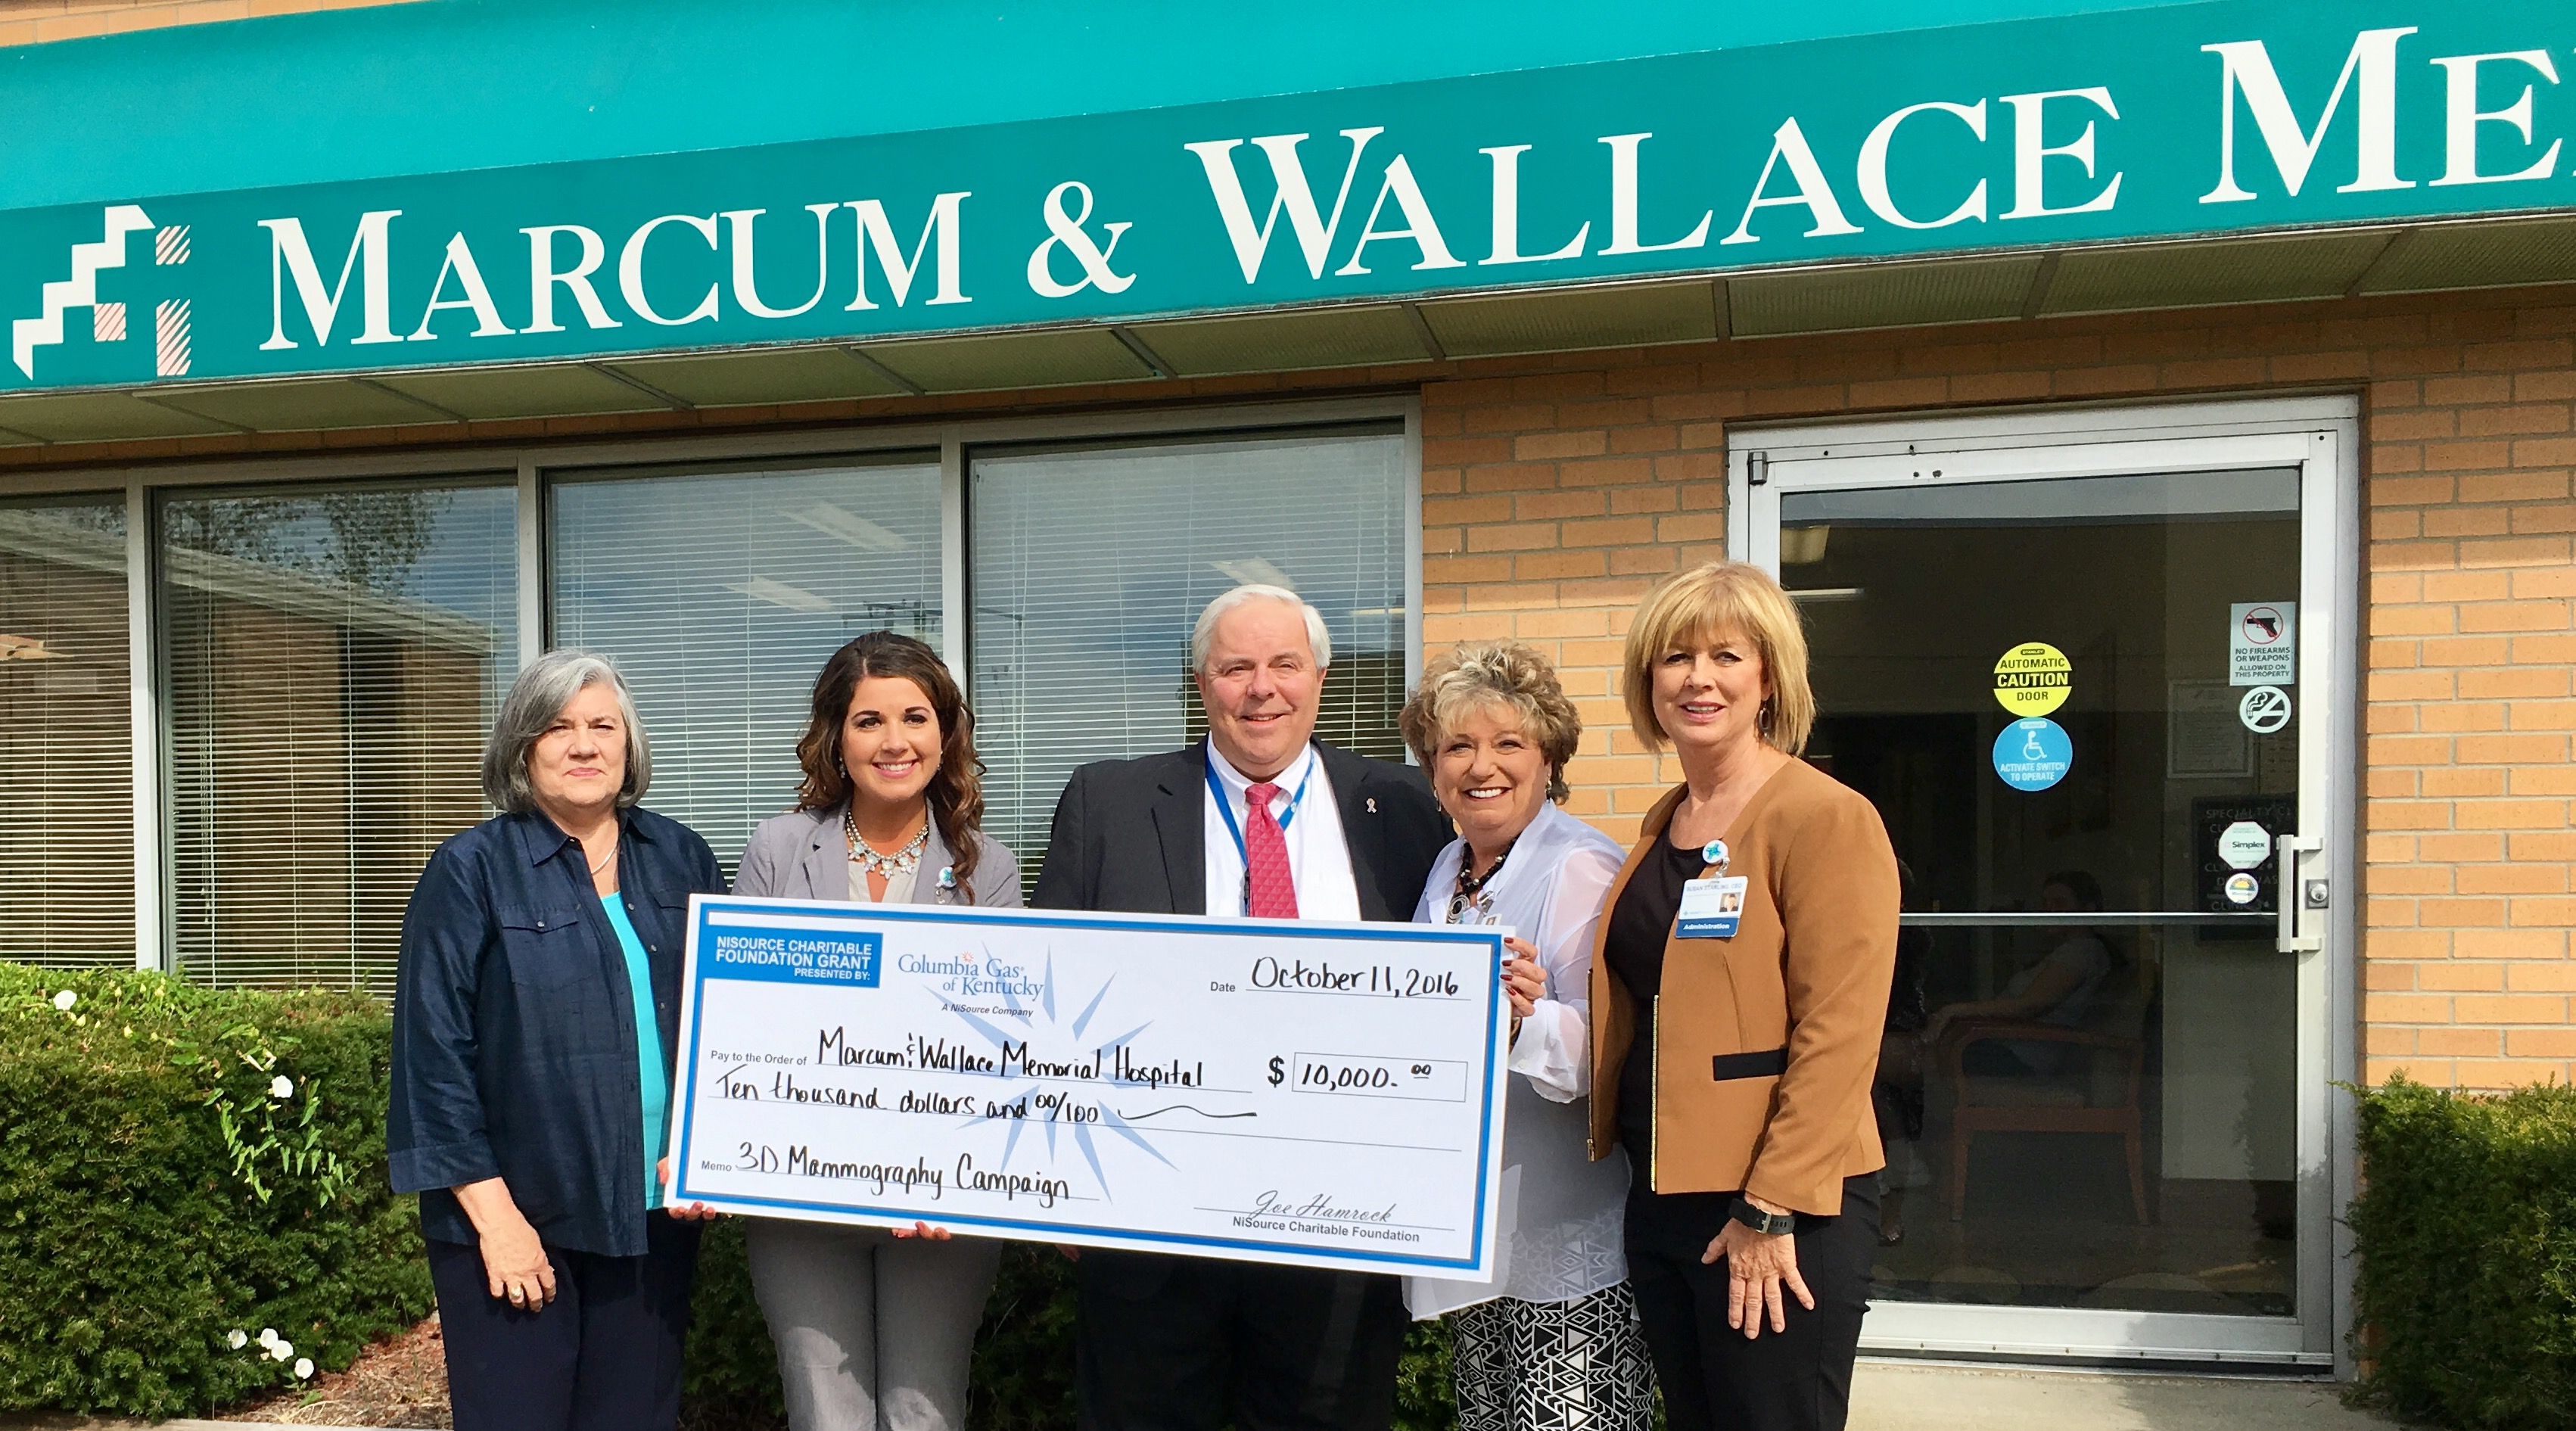 Columbia Gas awards $10,000 grant to 3D mammography campaign